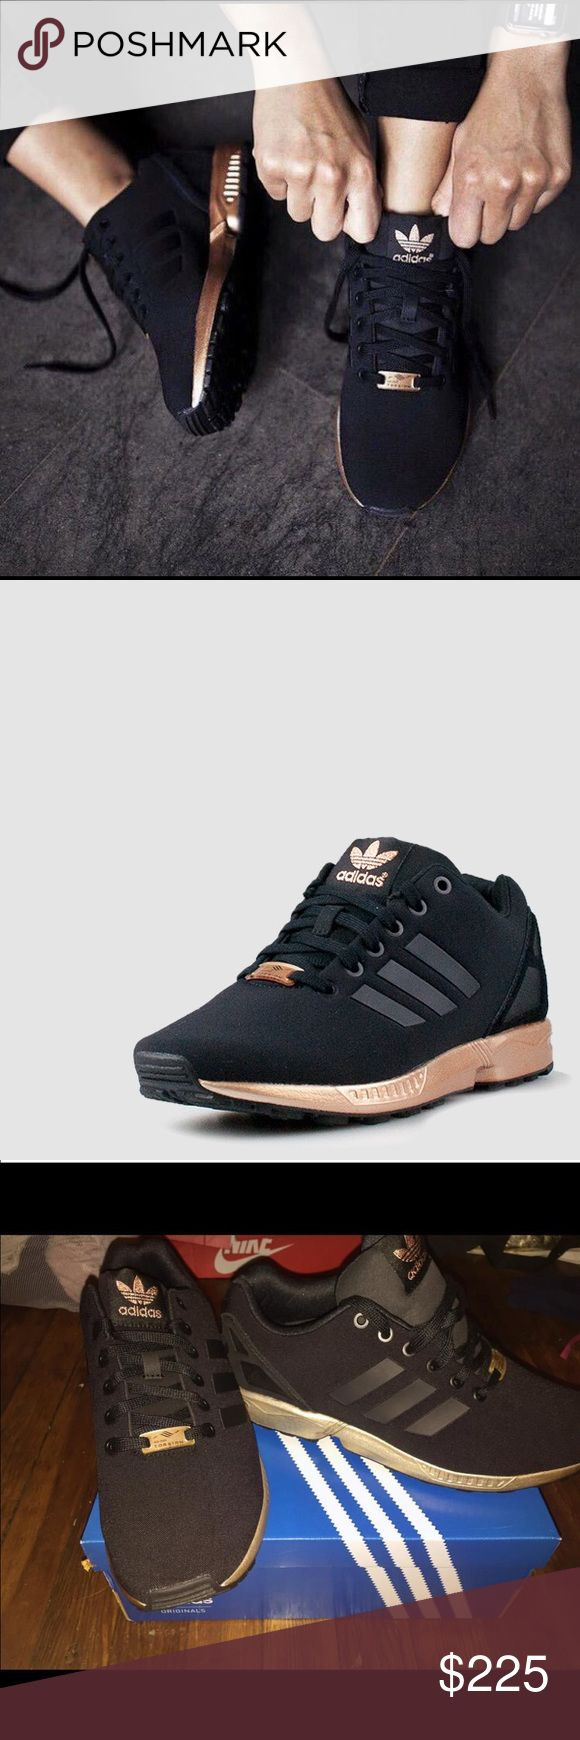 f336ba142349f Adidas Zx Flux Black X Rose Gold wallbank-lfc.co.uk